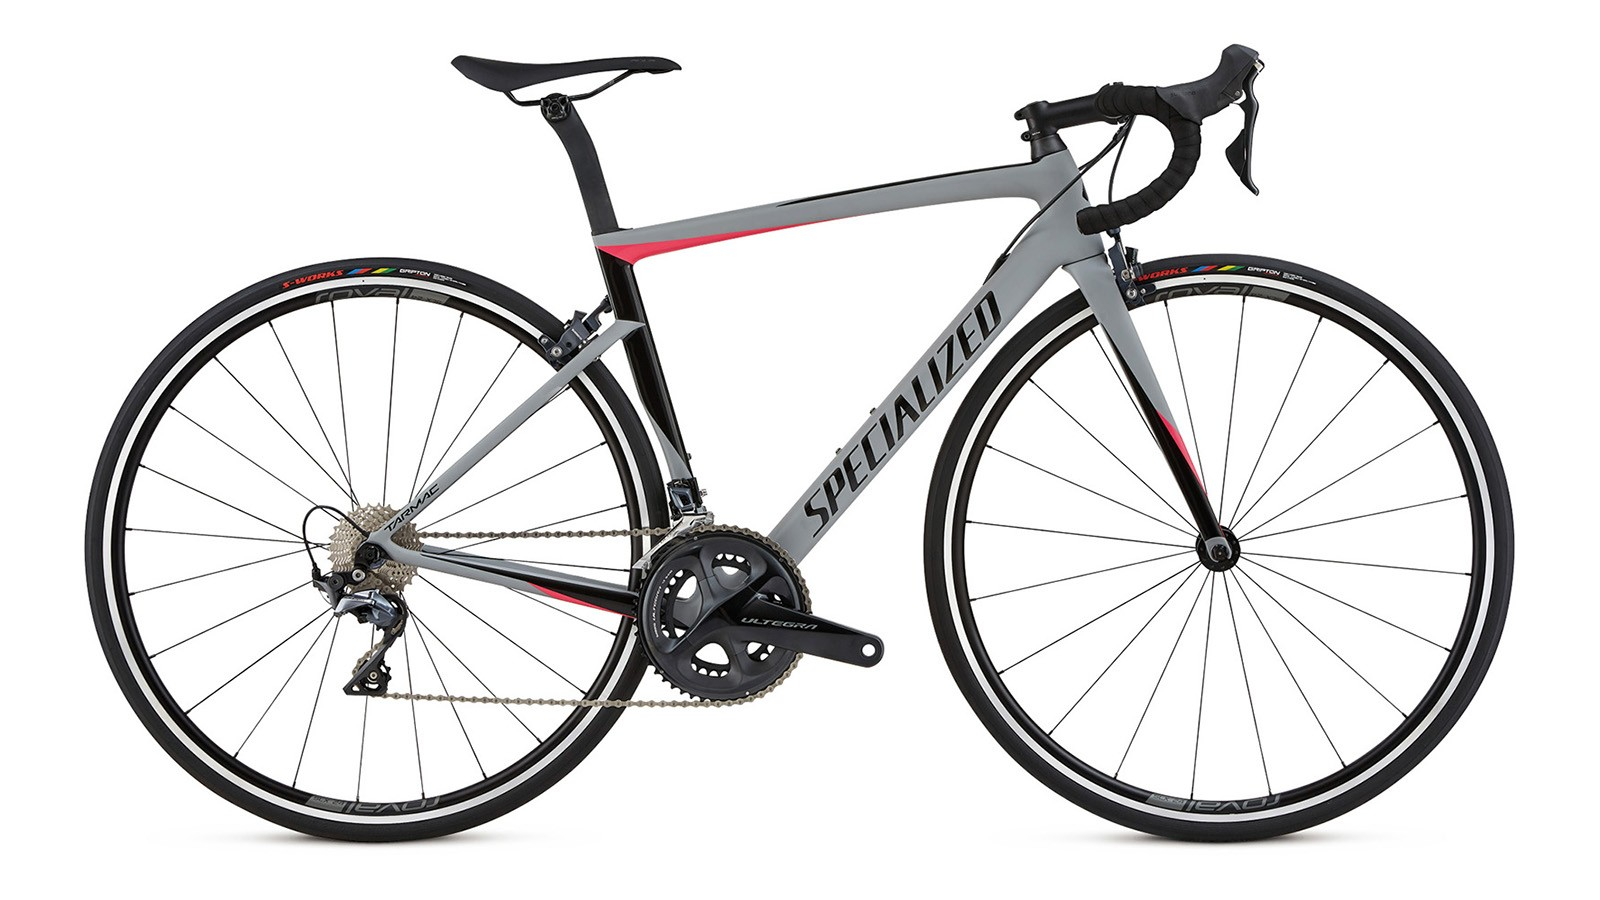 The Expert level women's bike comes with Ultegra Di2